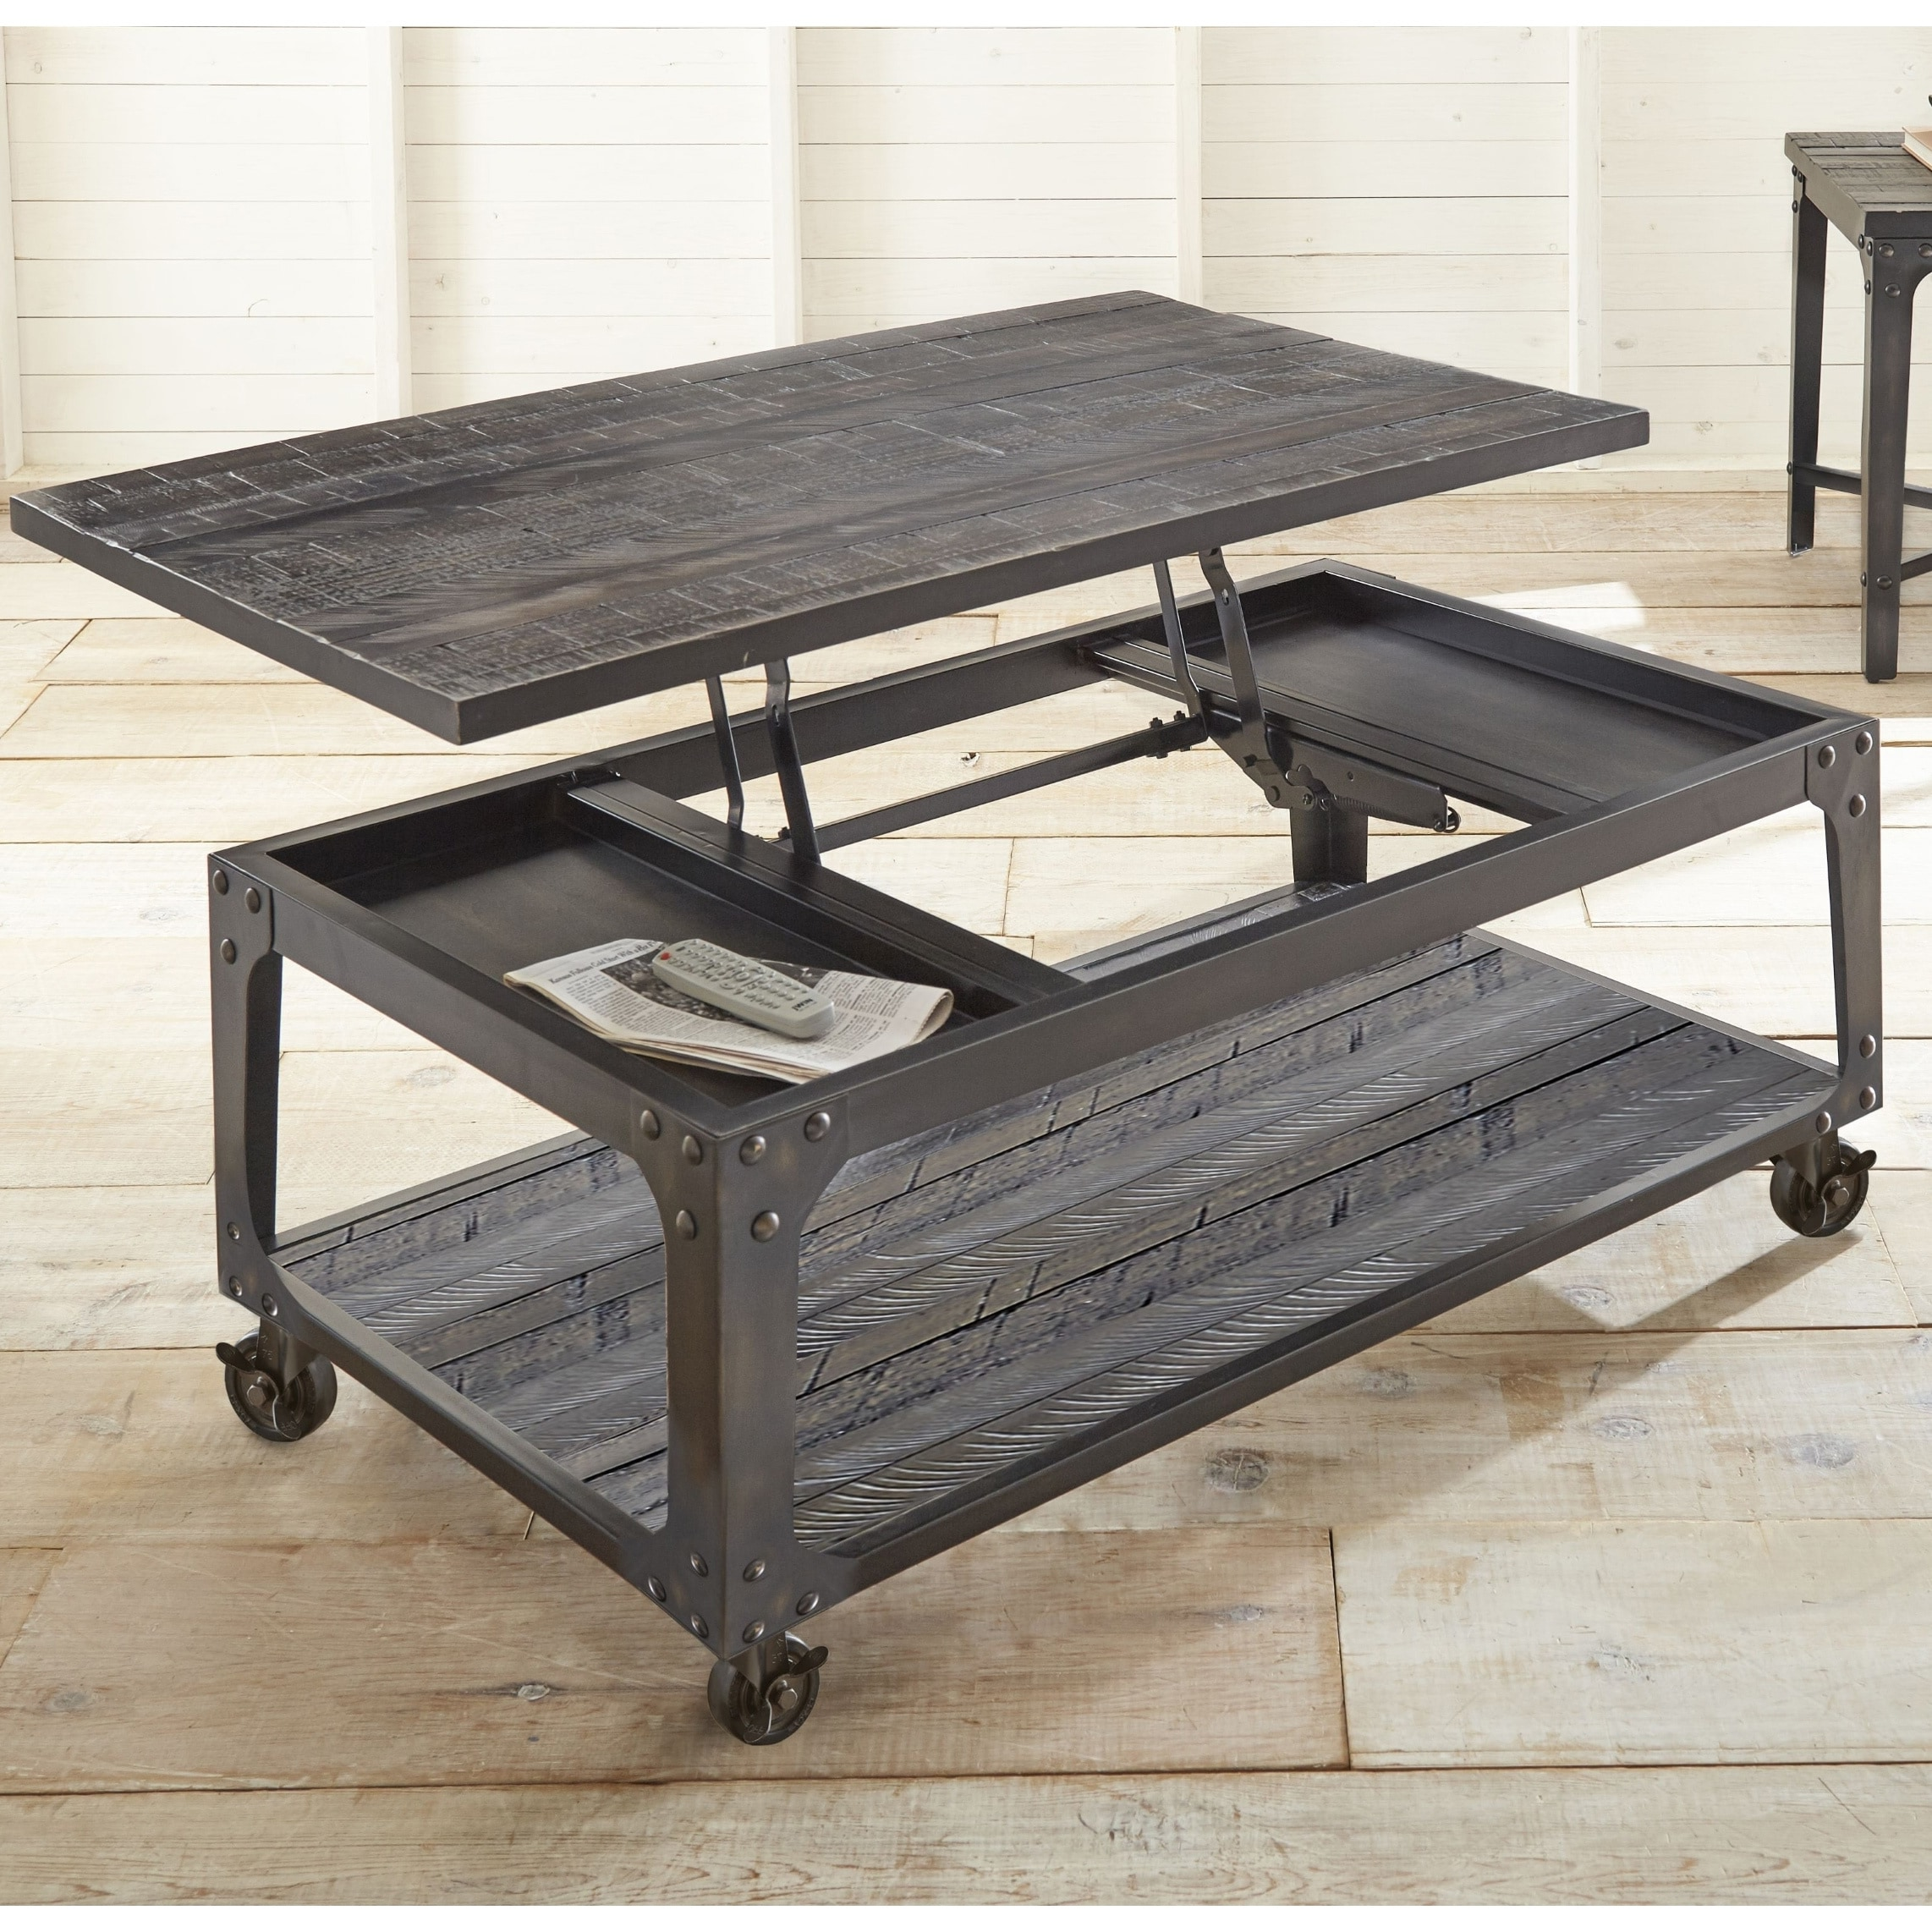 springdale industrial style 48 inch rectangle lift top coffee table by greyson living